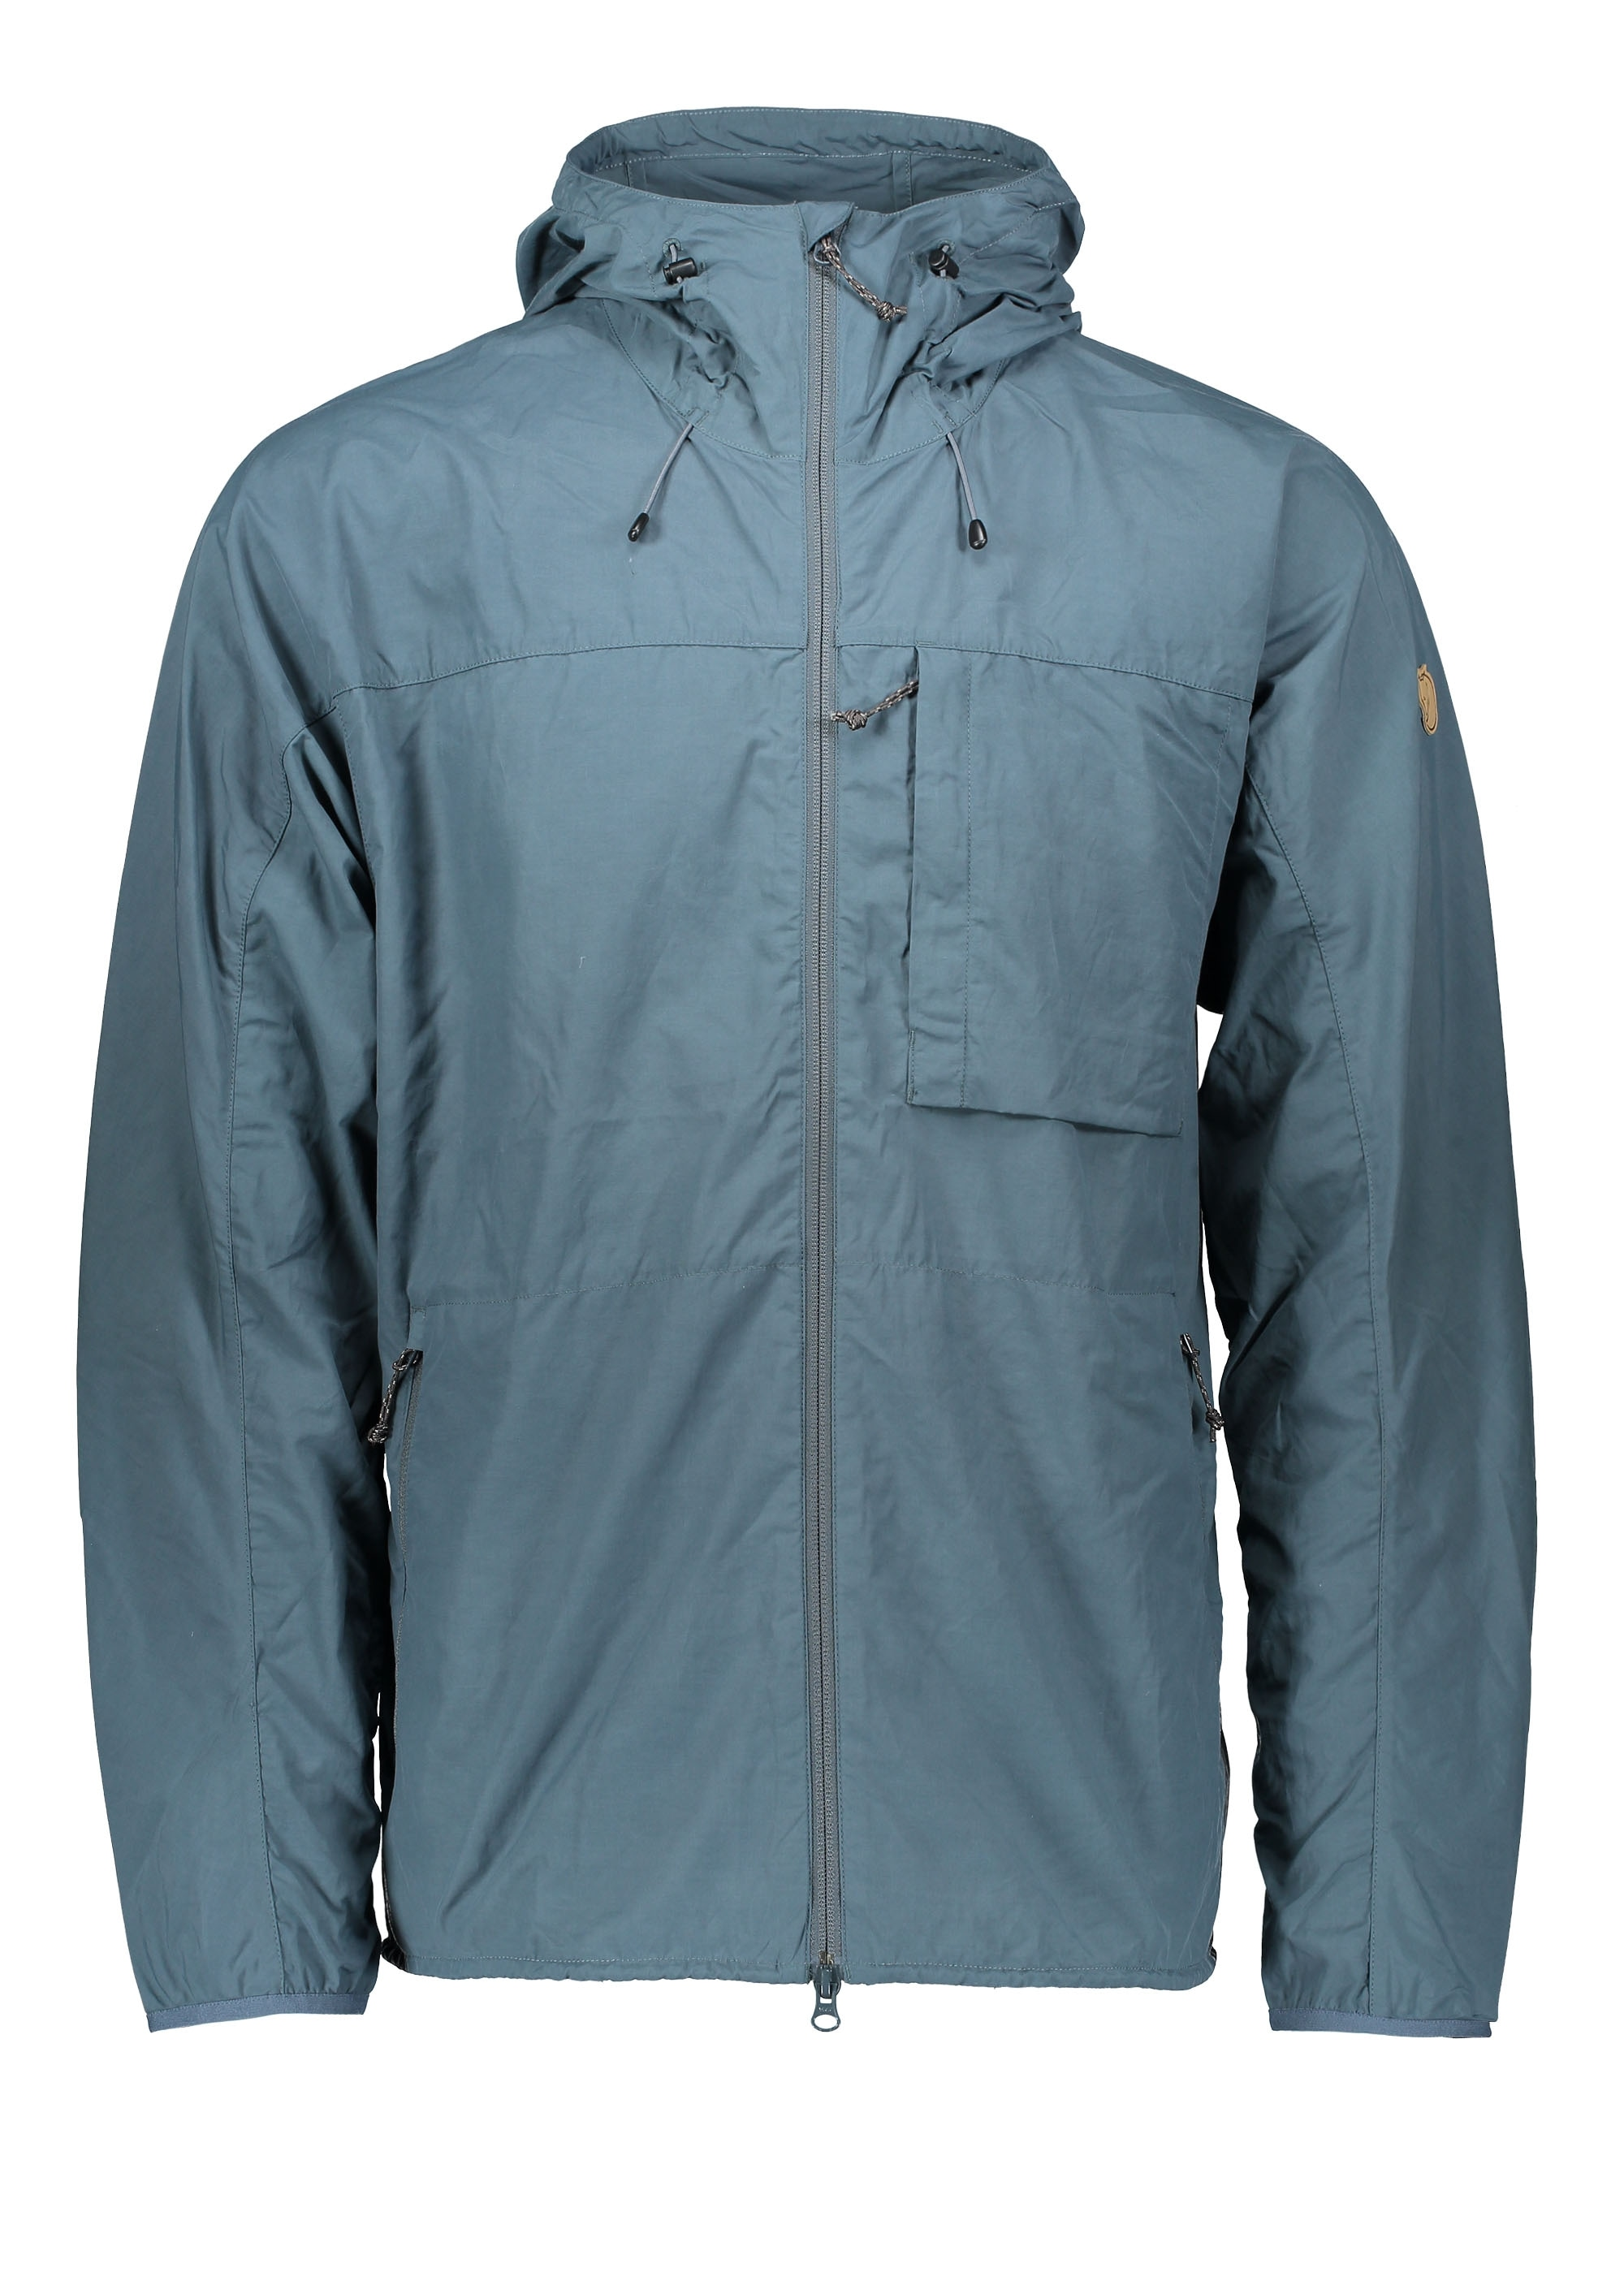 Fjallraven High Coast Wind Jacket Dusk